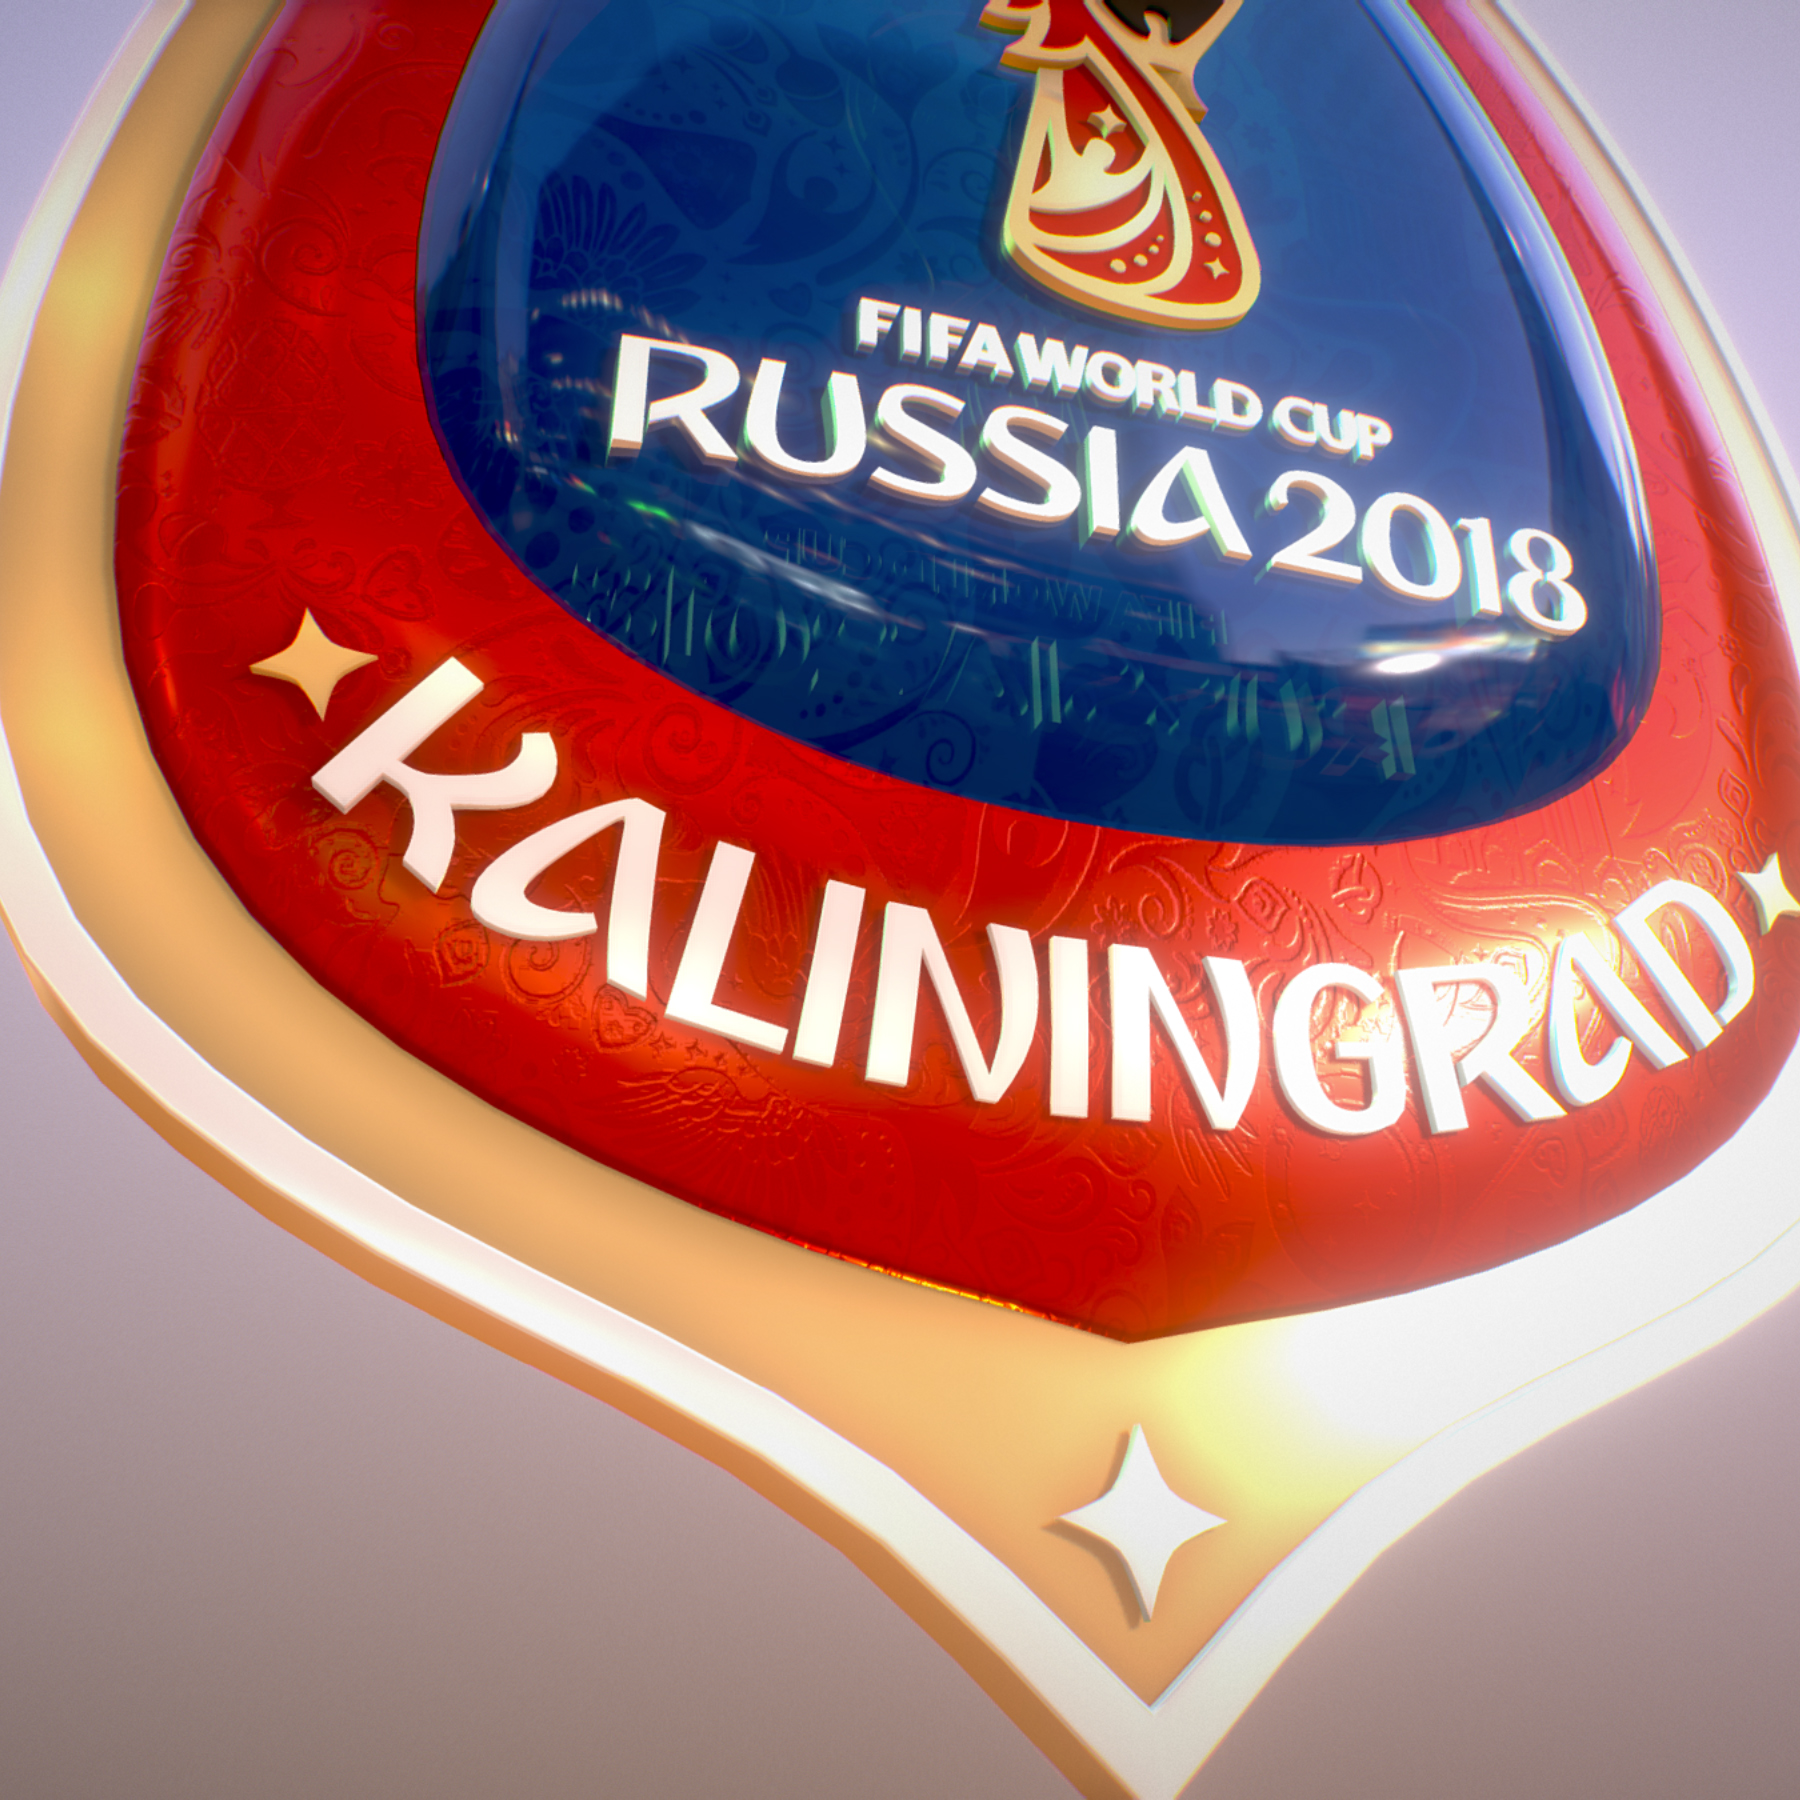 kaliningrad city world cup Rusija 2018 simbol 3d model max fbx jpeg jpg ma mb obj 271764